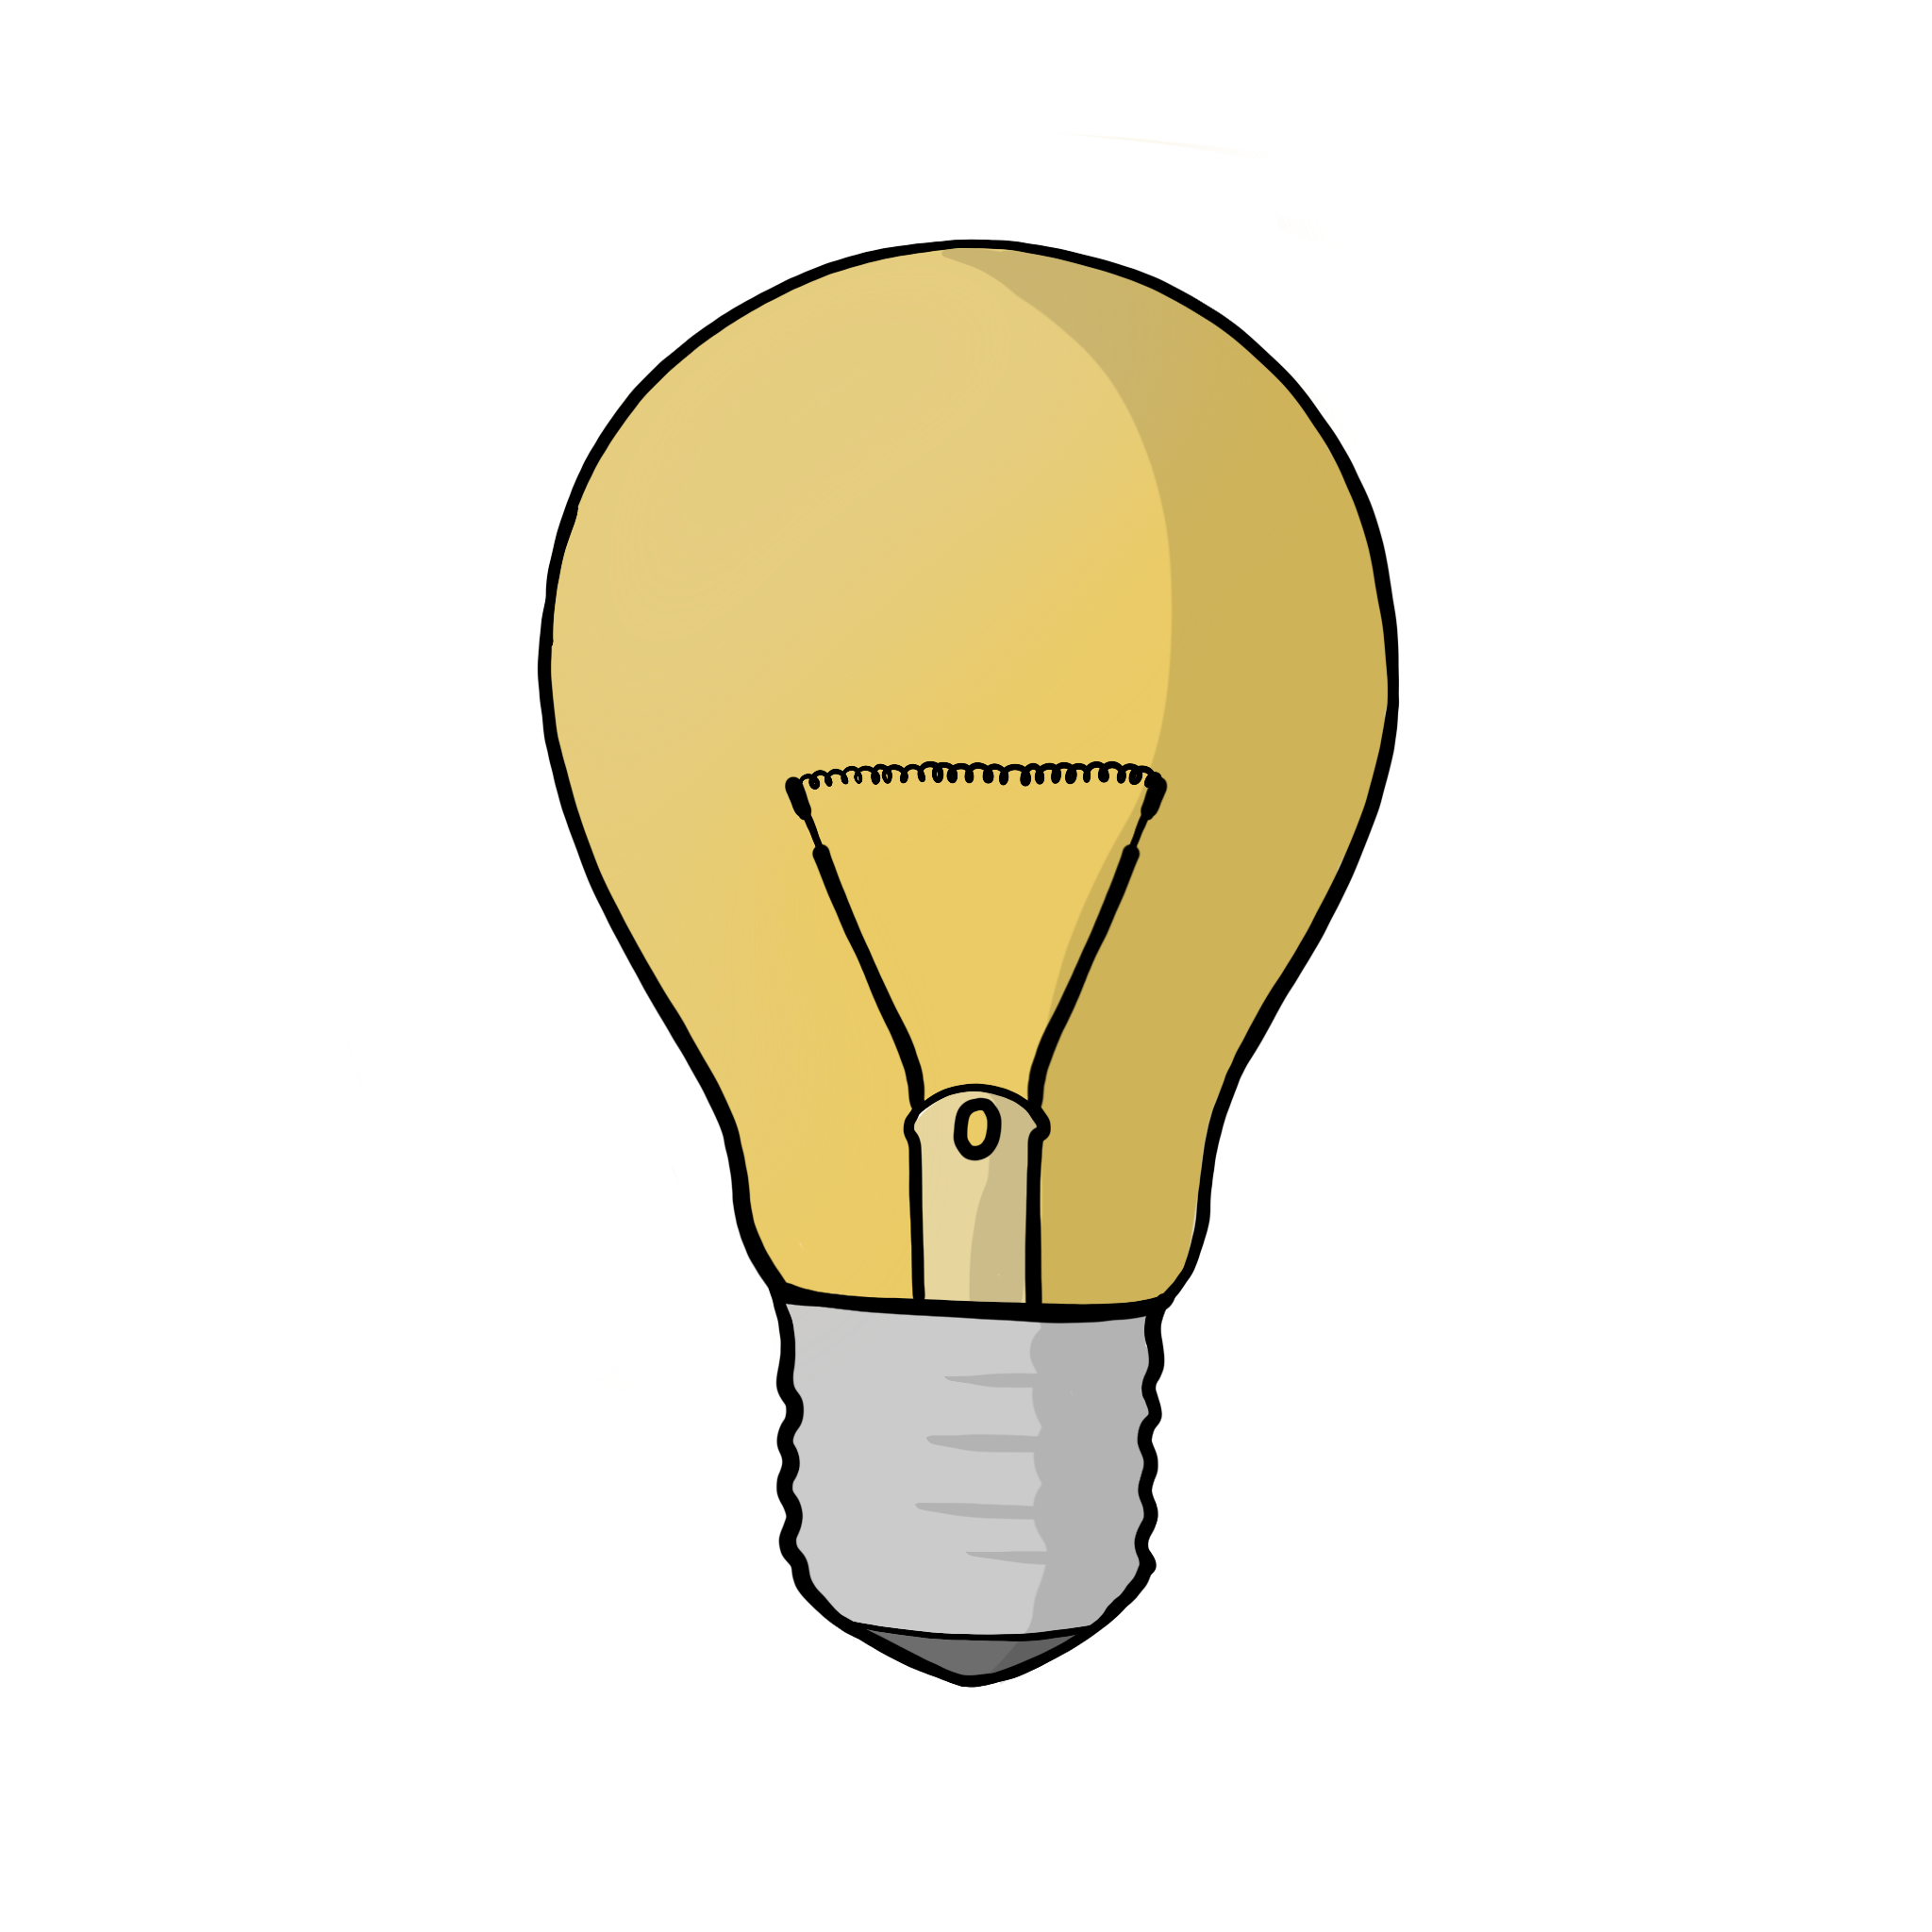 Light bulb representing Knowledge